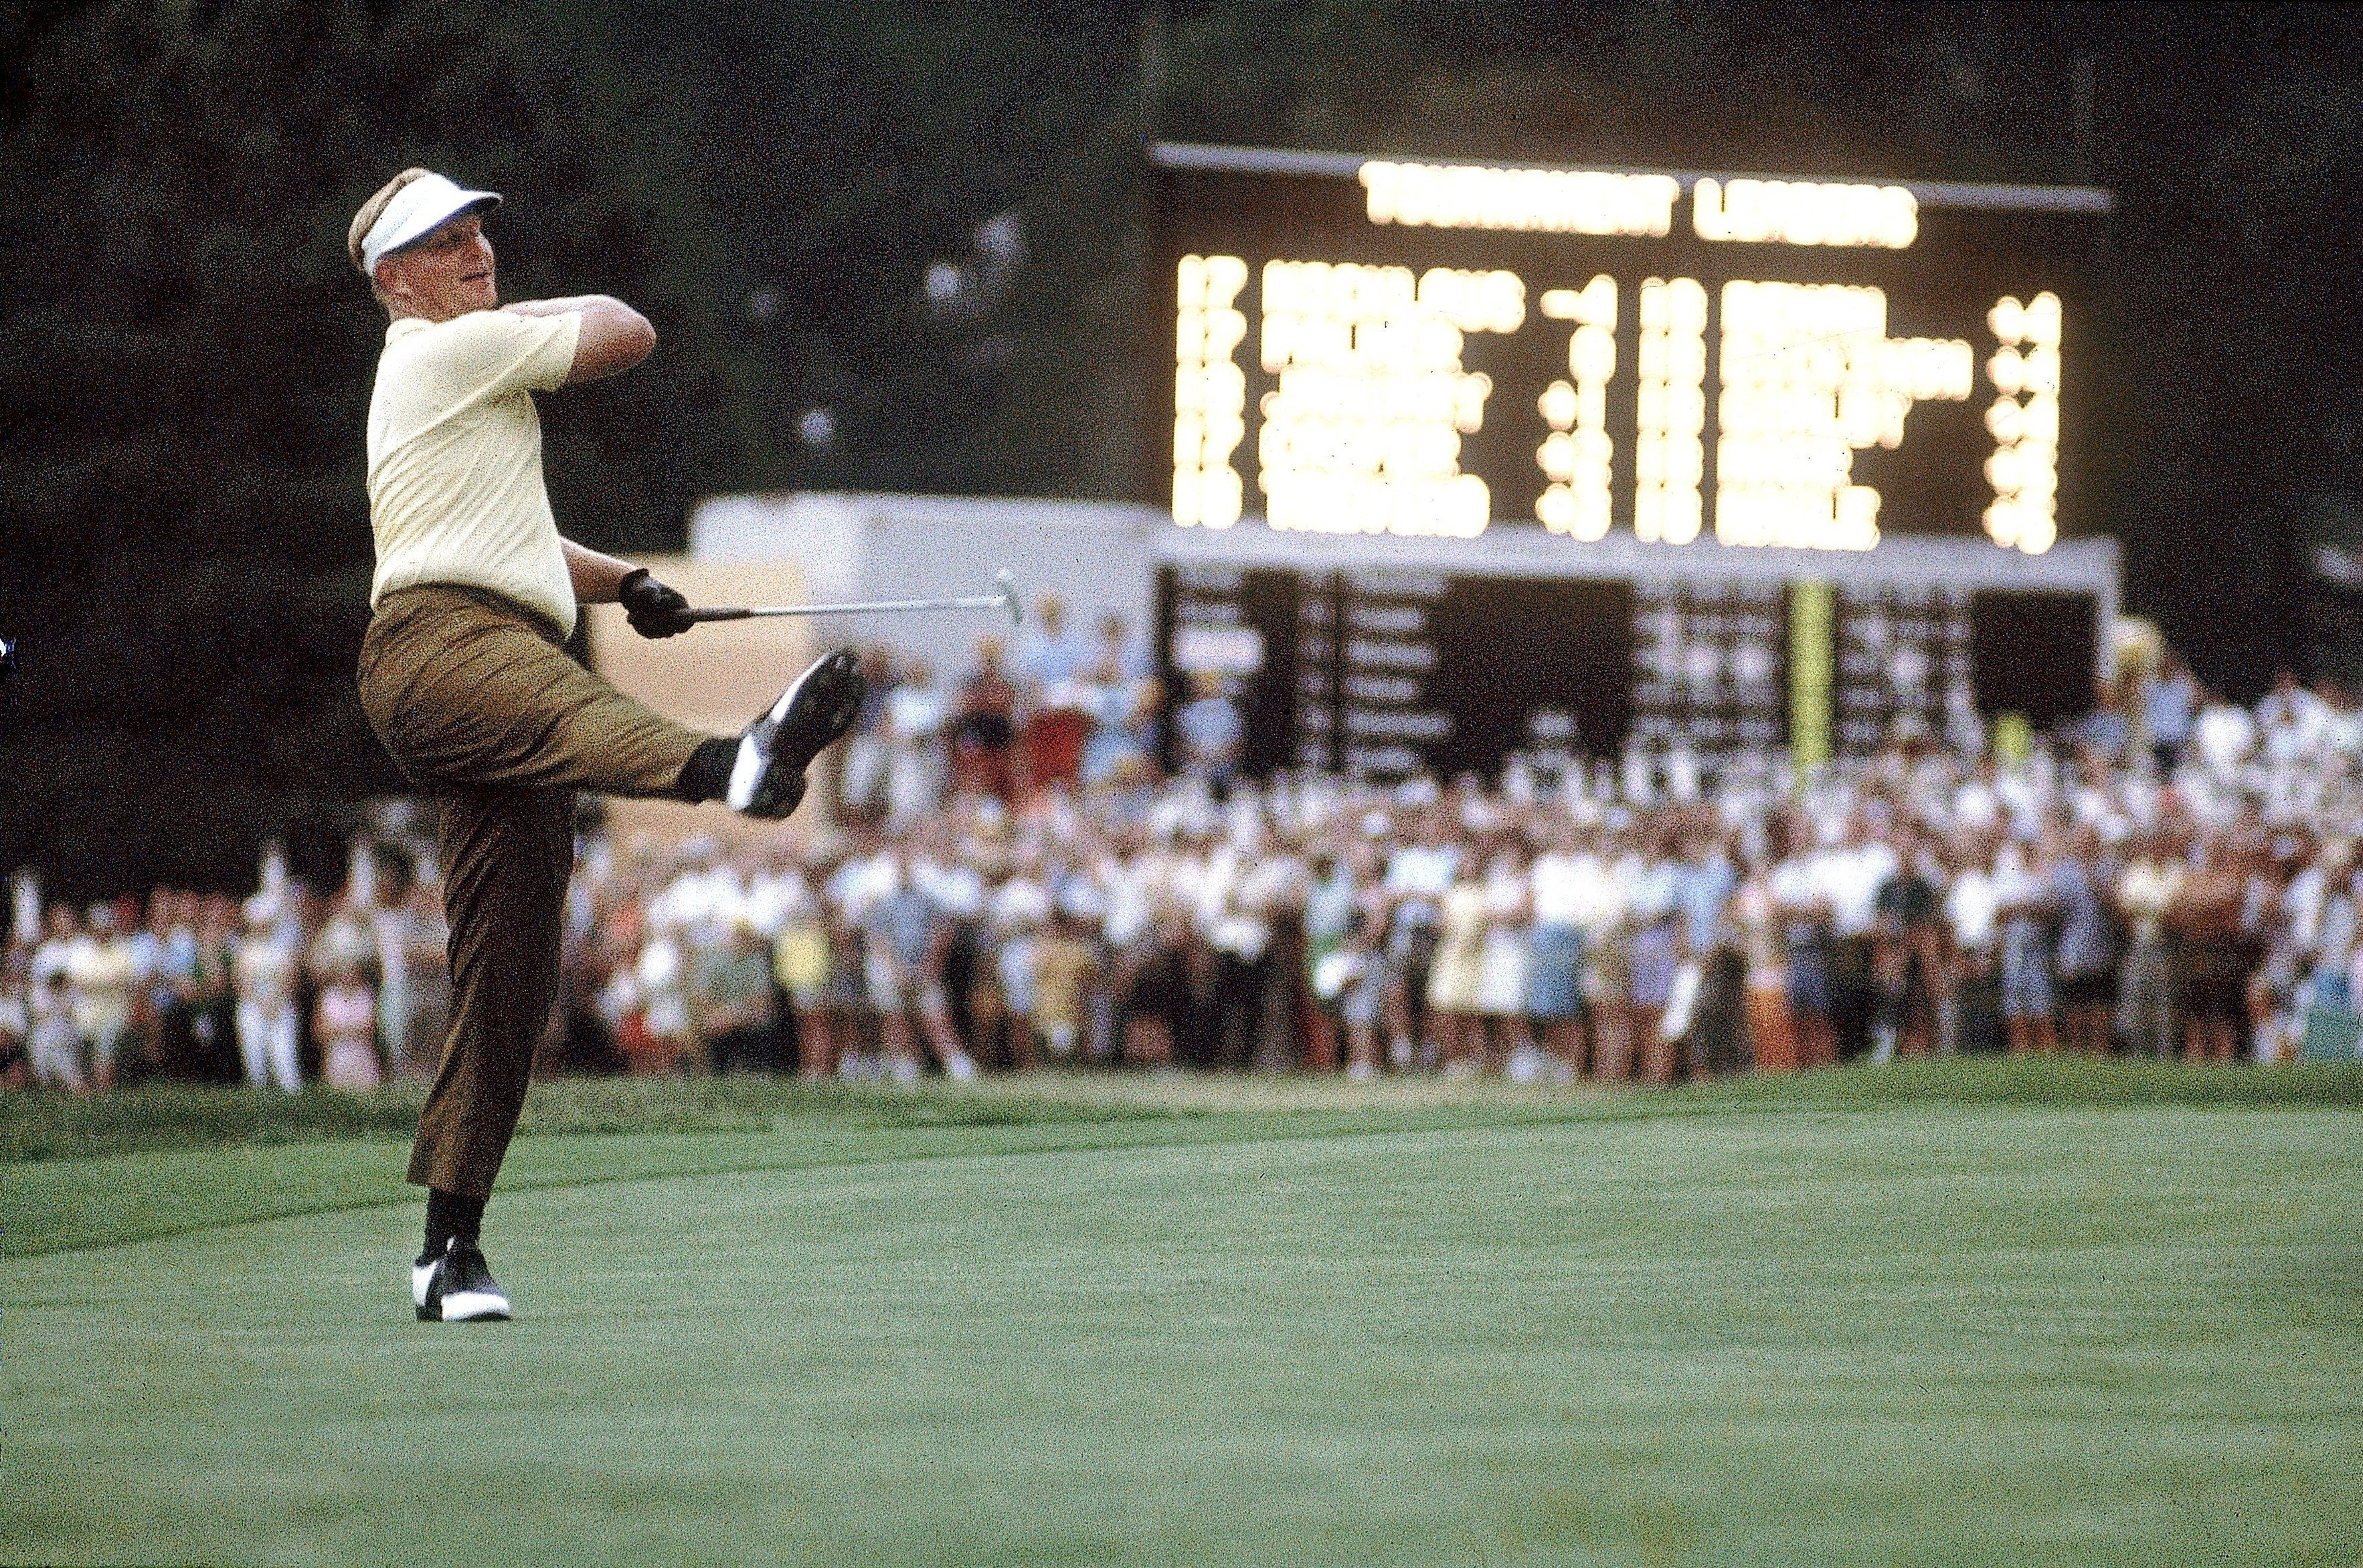 Jack Nicklaus breaks the U.S. Open record in 1967.